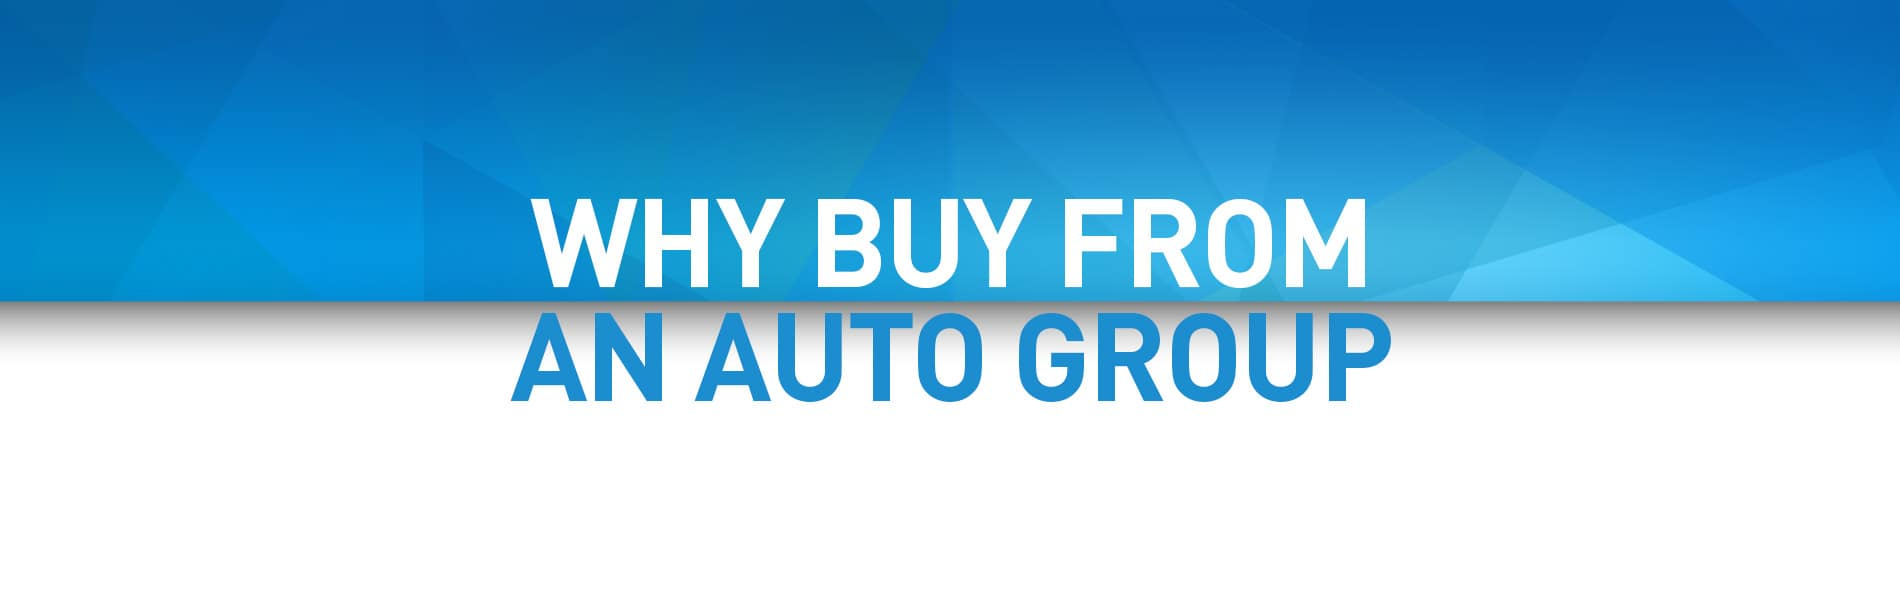 Why Buy from an Automotive Group | Fort Wayne, IN